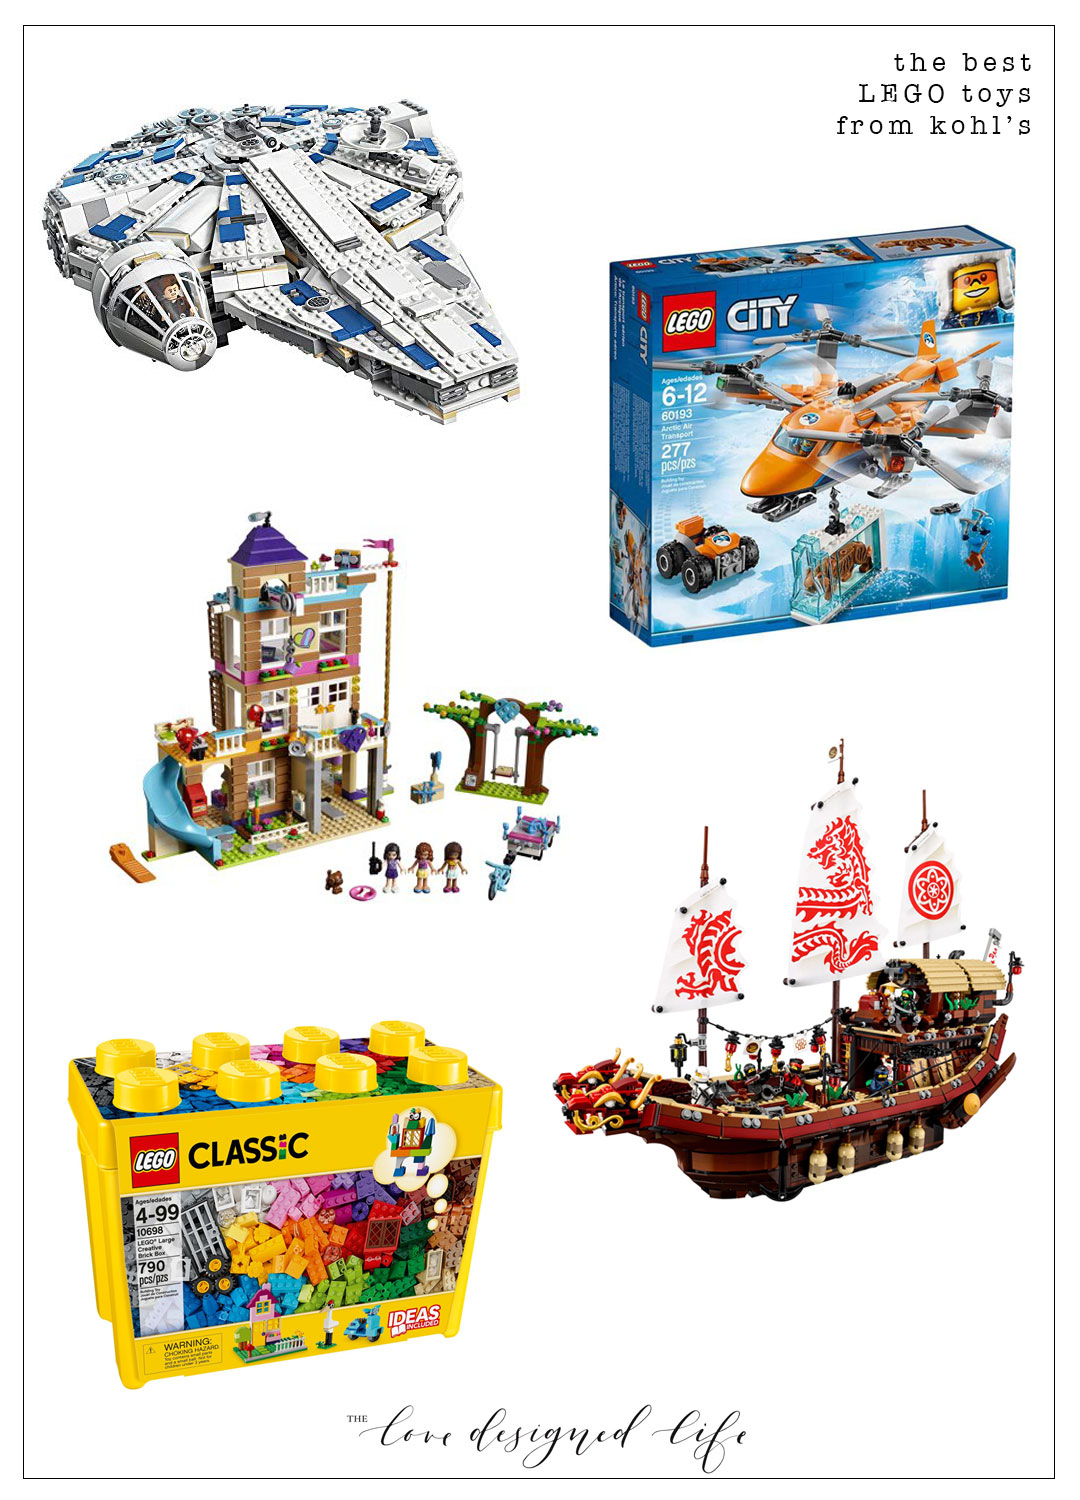 the best LEGO toys from kohl's for holiday toy shopping | thelovedesignedlife.com #holidaytoys @kohls #ad #lego #christmasgiftideas